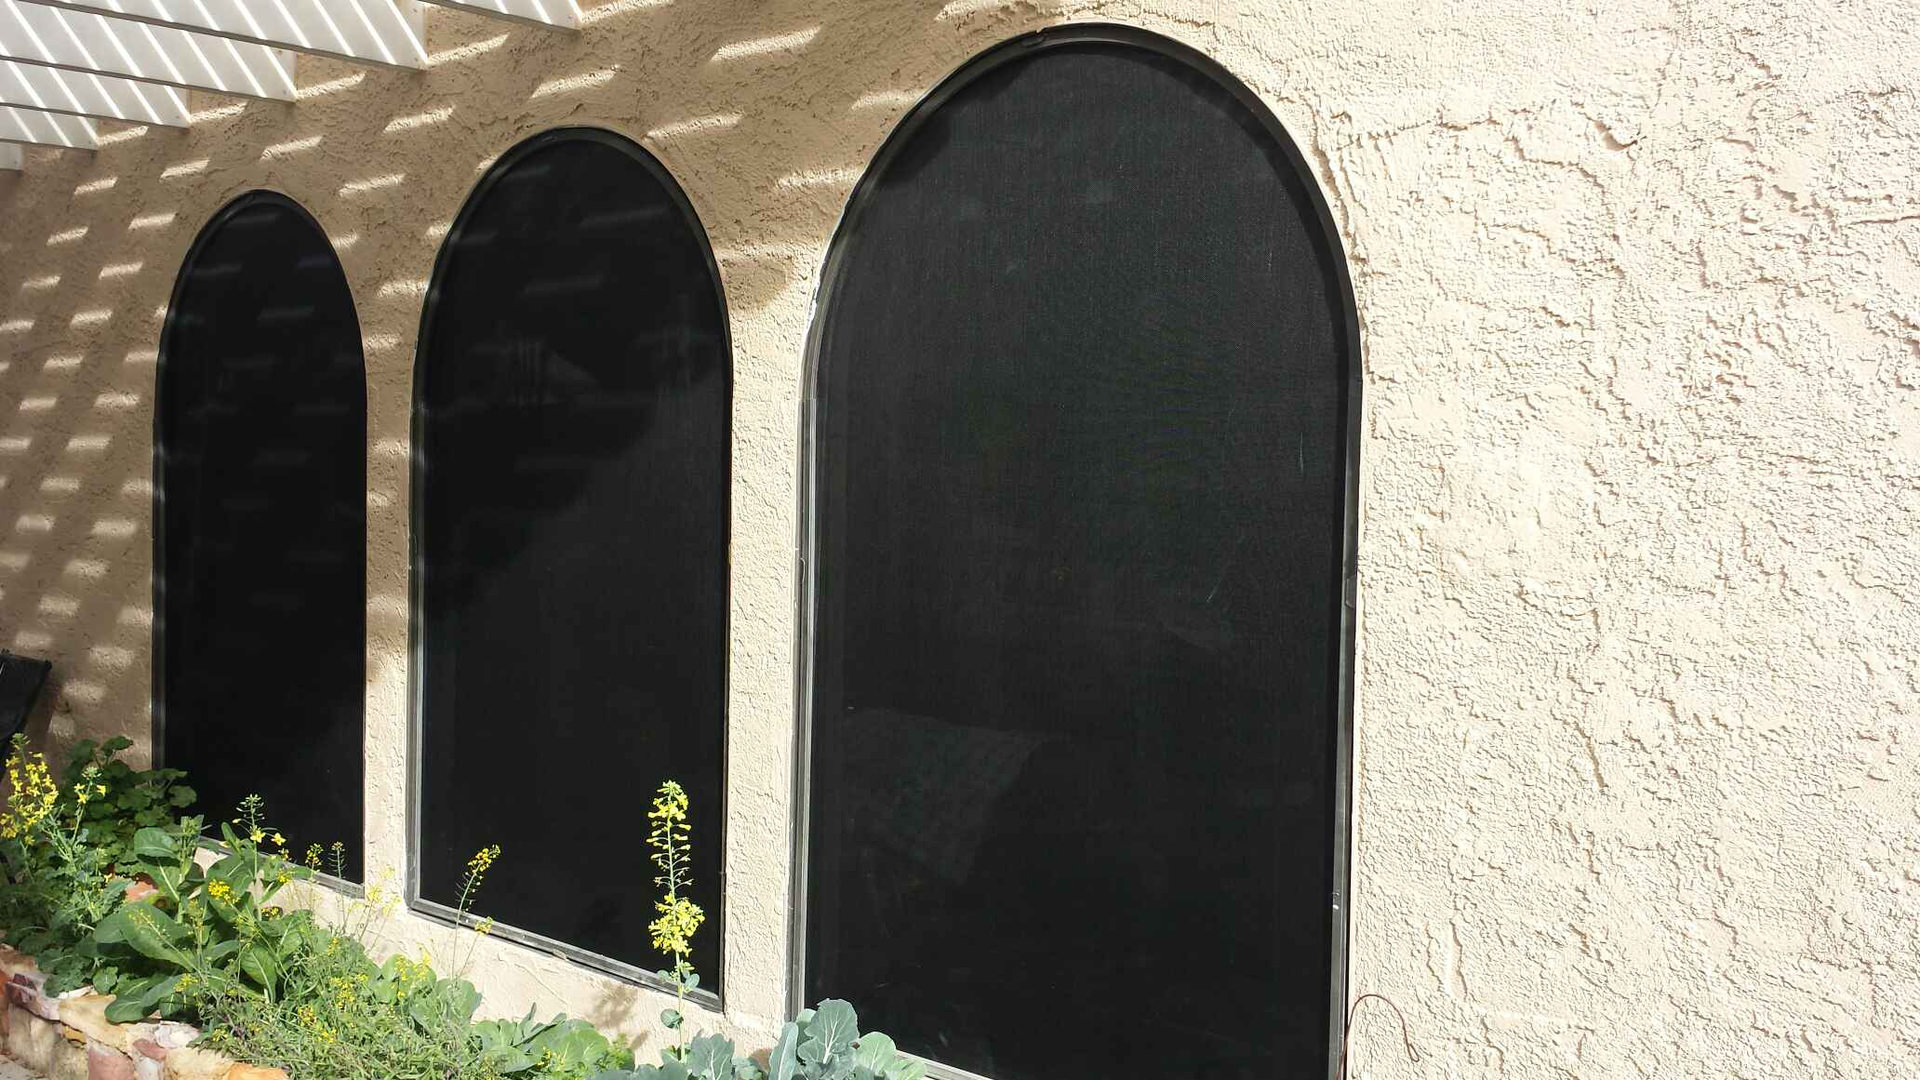 Oversized arched windows with 90% solar screens and bronze frames